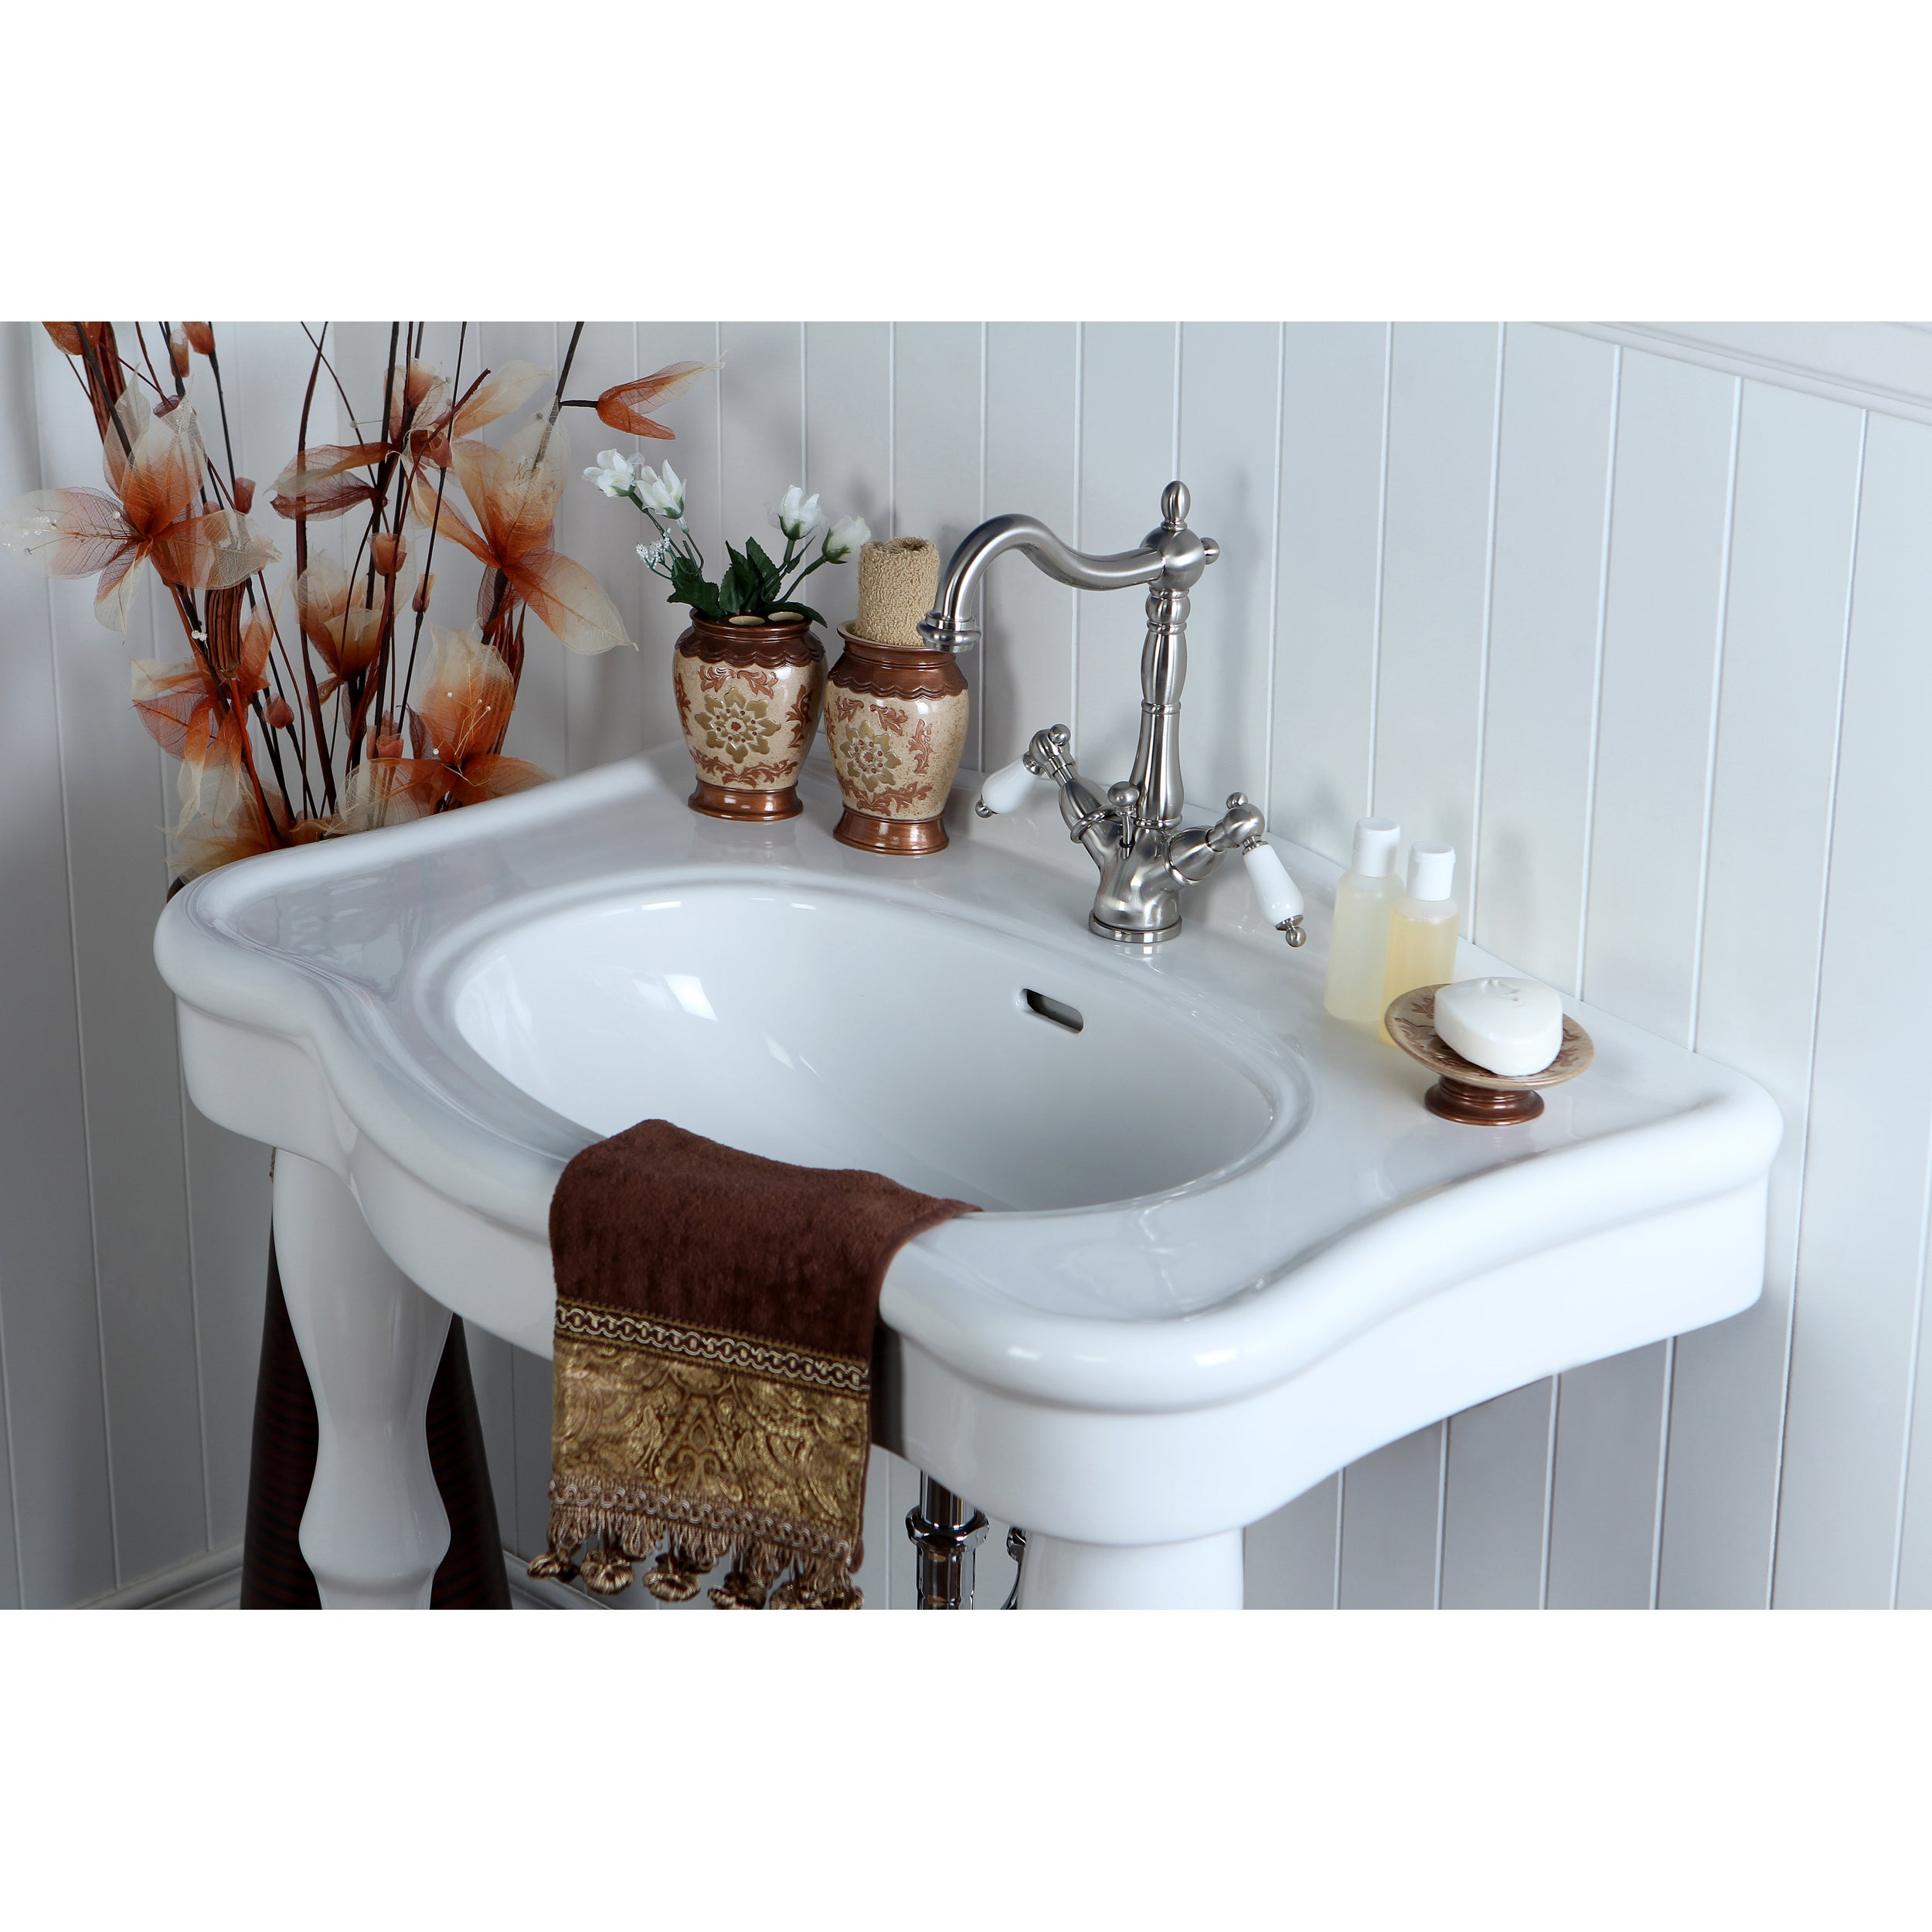 emerging cierra from attractive sinks sink updates practical pedestal noted small ideas large bathroom porcelain interior home